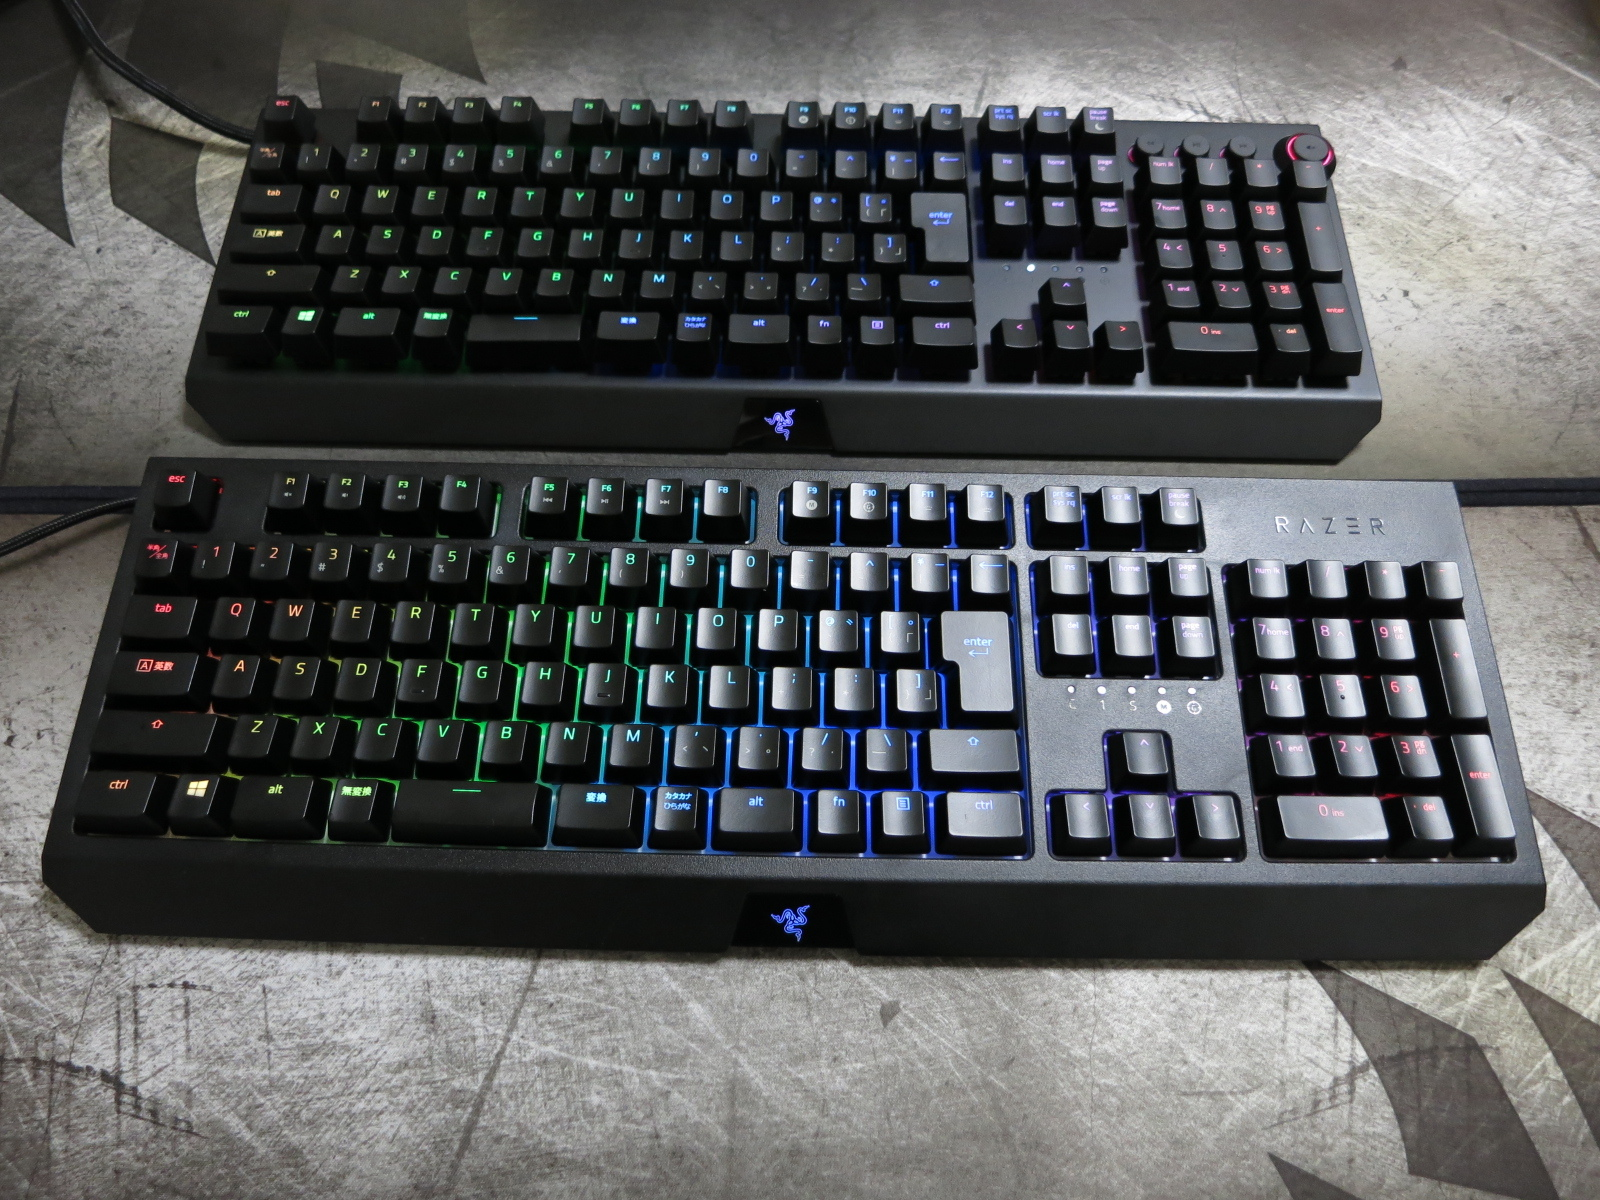 Razer_BlackWidow_2019vsElite_23.jpg